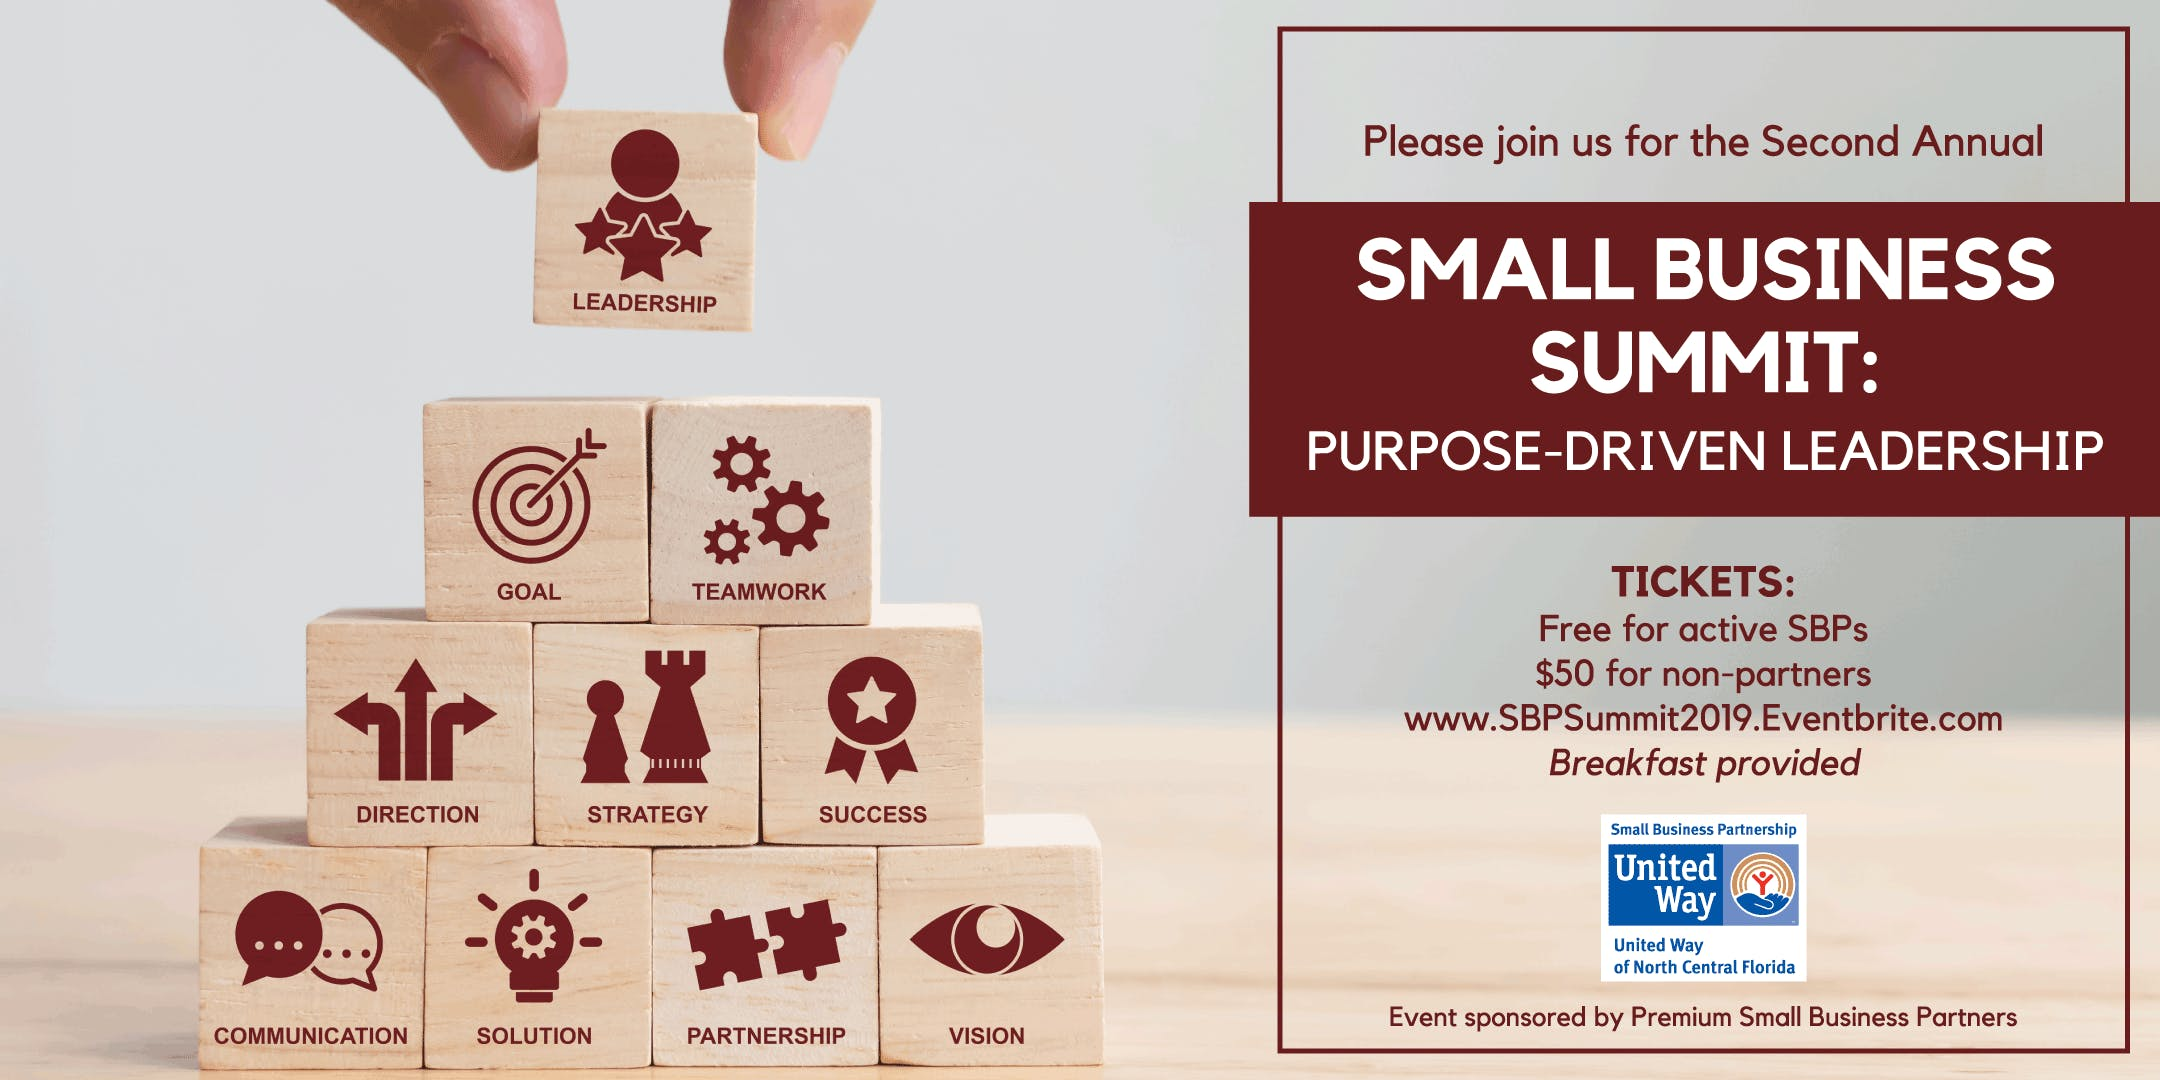 Second Annual Small Business Summit - 21 FEB 2019